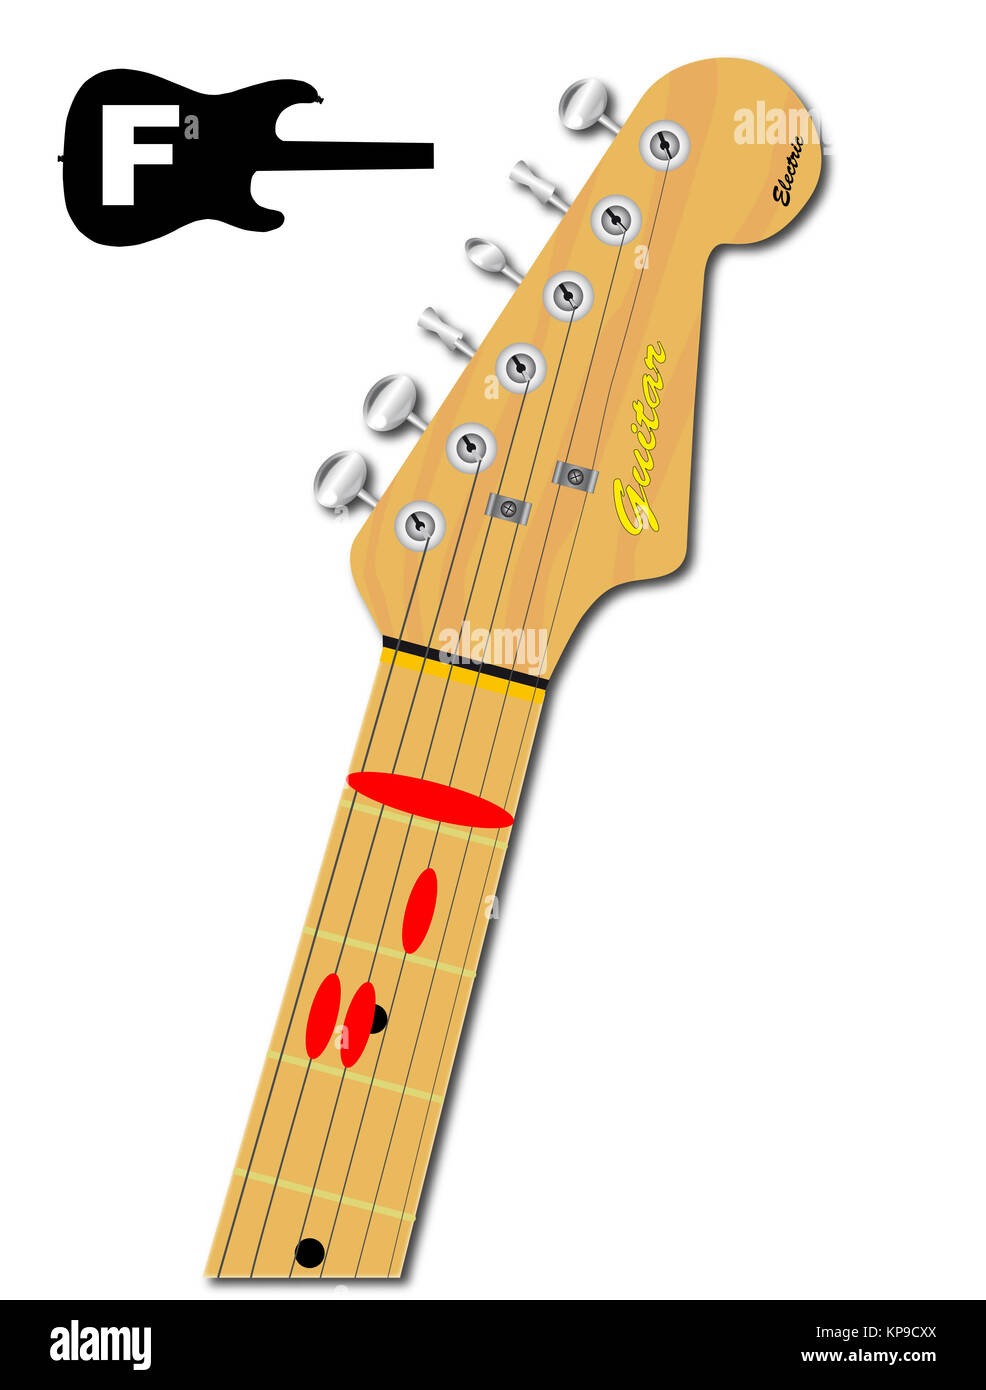 The Guitar Chord Of F Major Stock Photo 168623474 Alamy